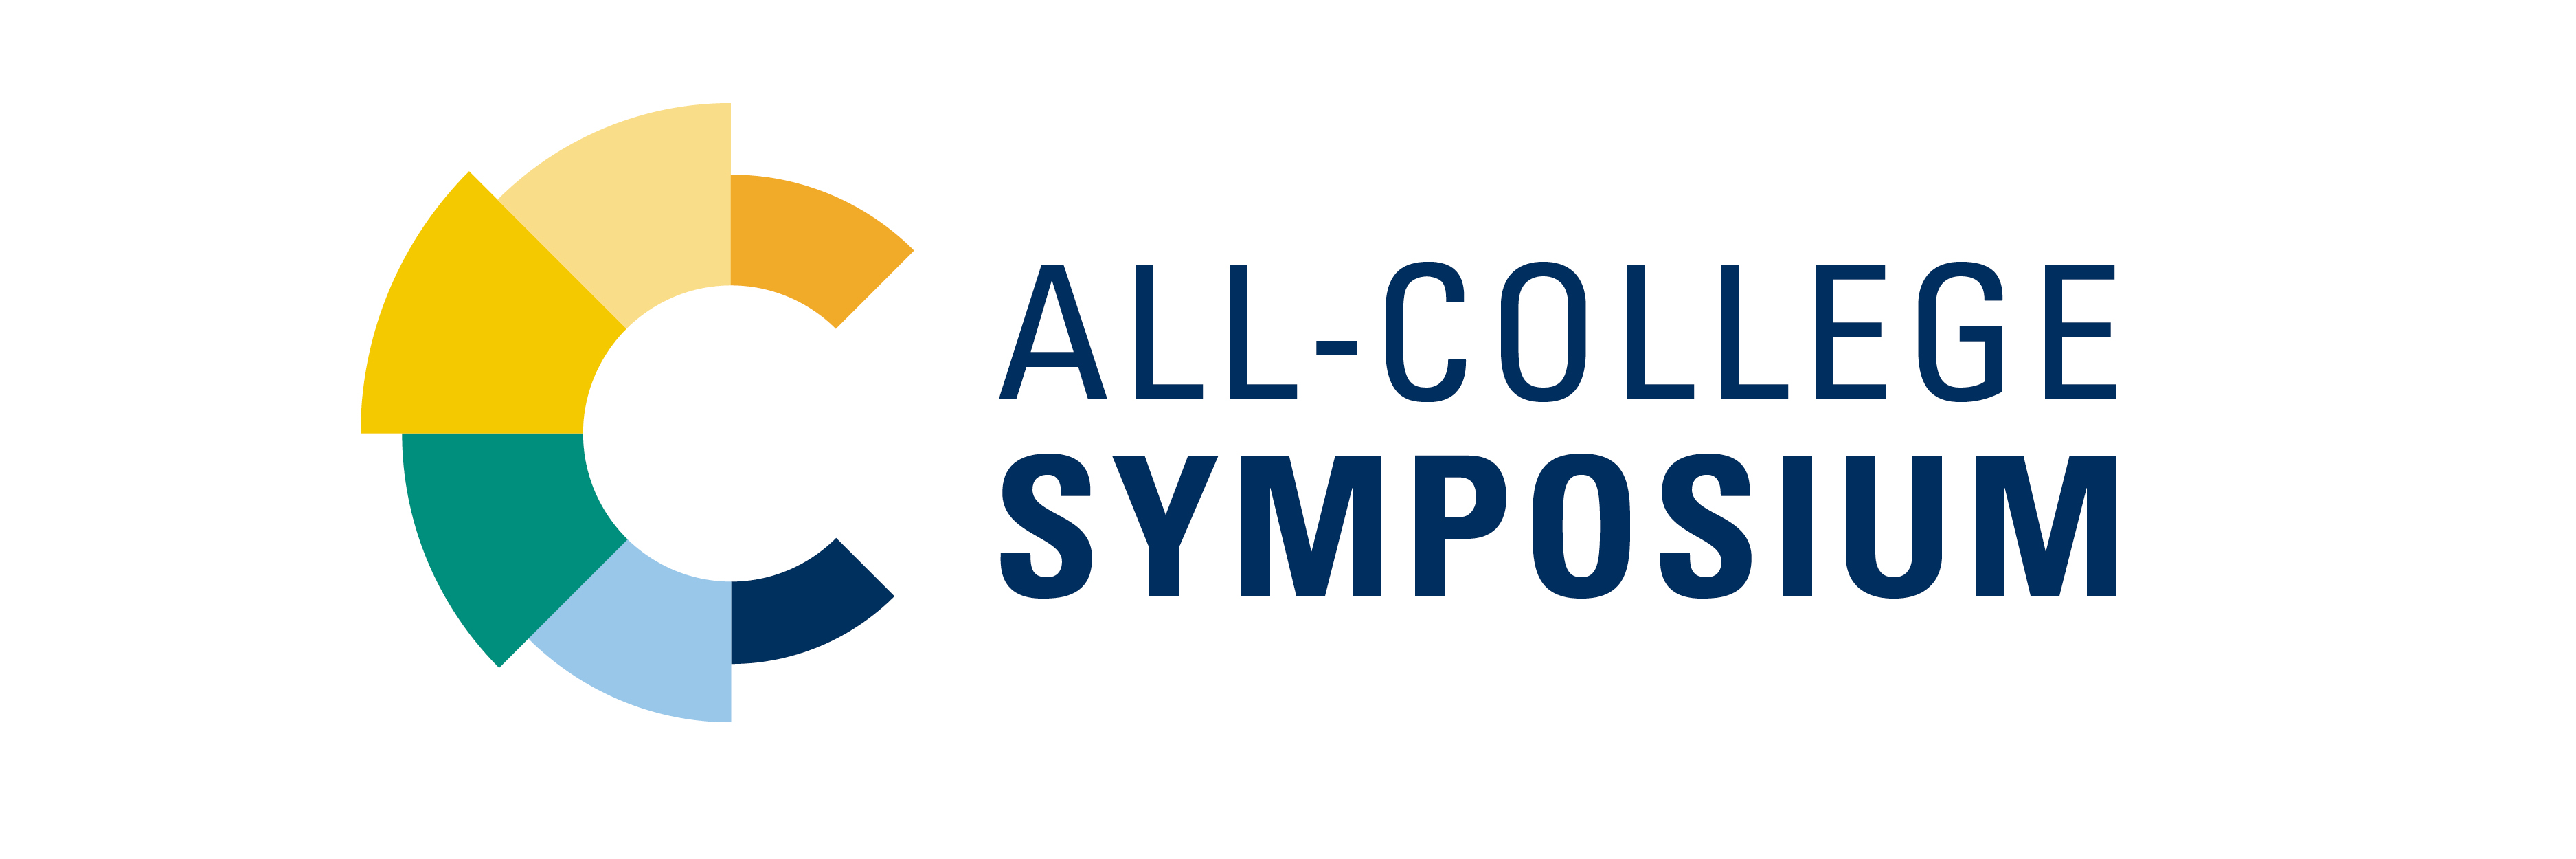 Announcing the All-College Symposium